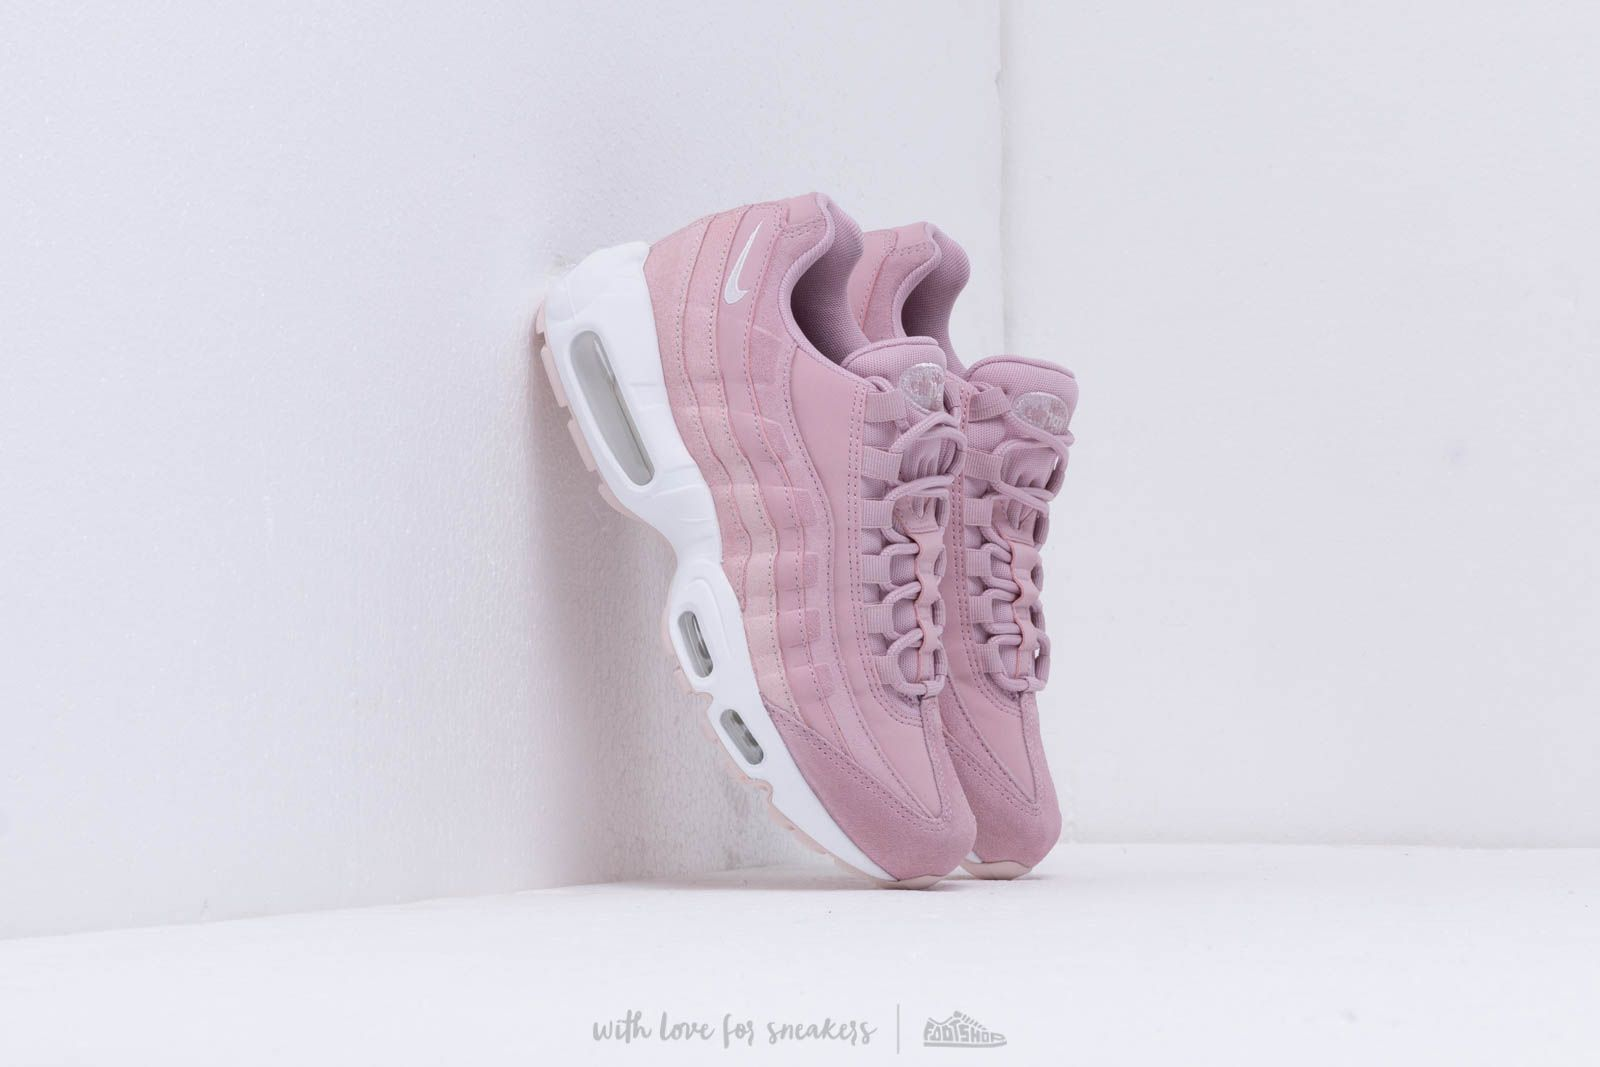 sélection premium 30cba 8a409 Nike Wmns Air Max 95 Prm Plum Chalk/ Barely Rose-Summit ...